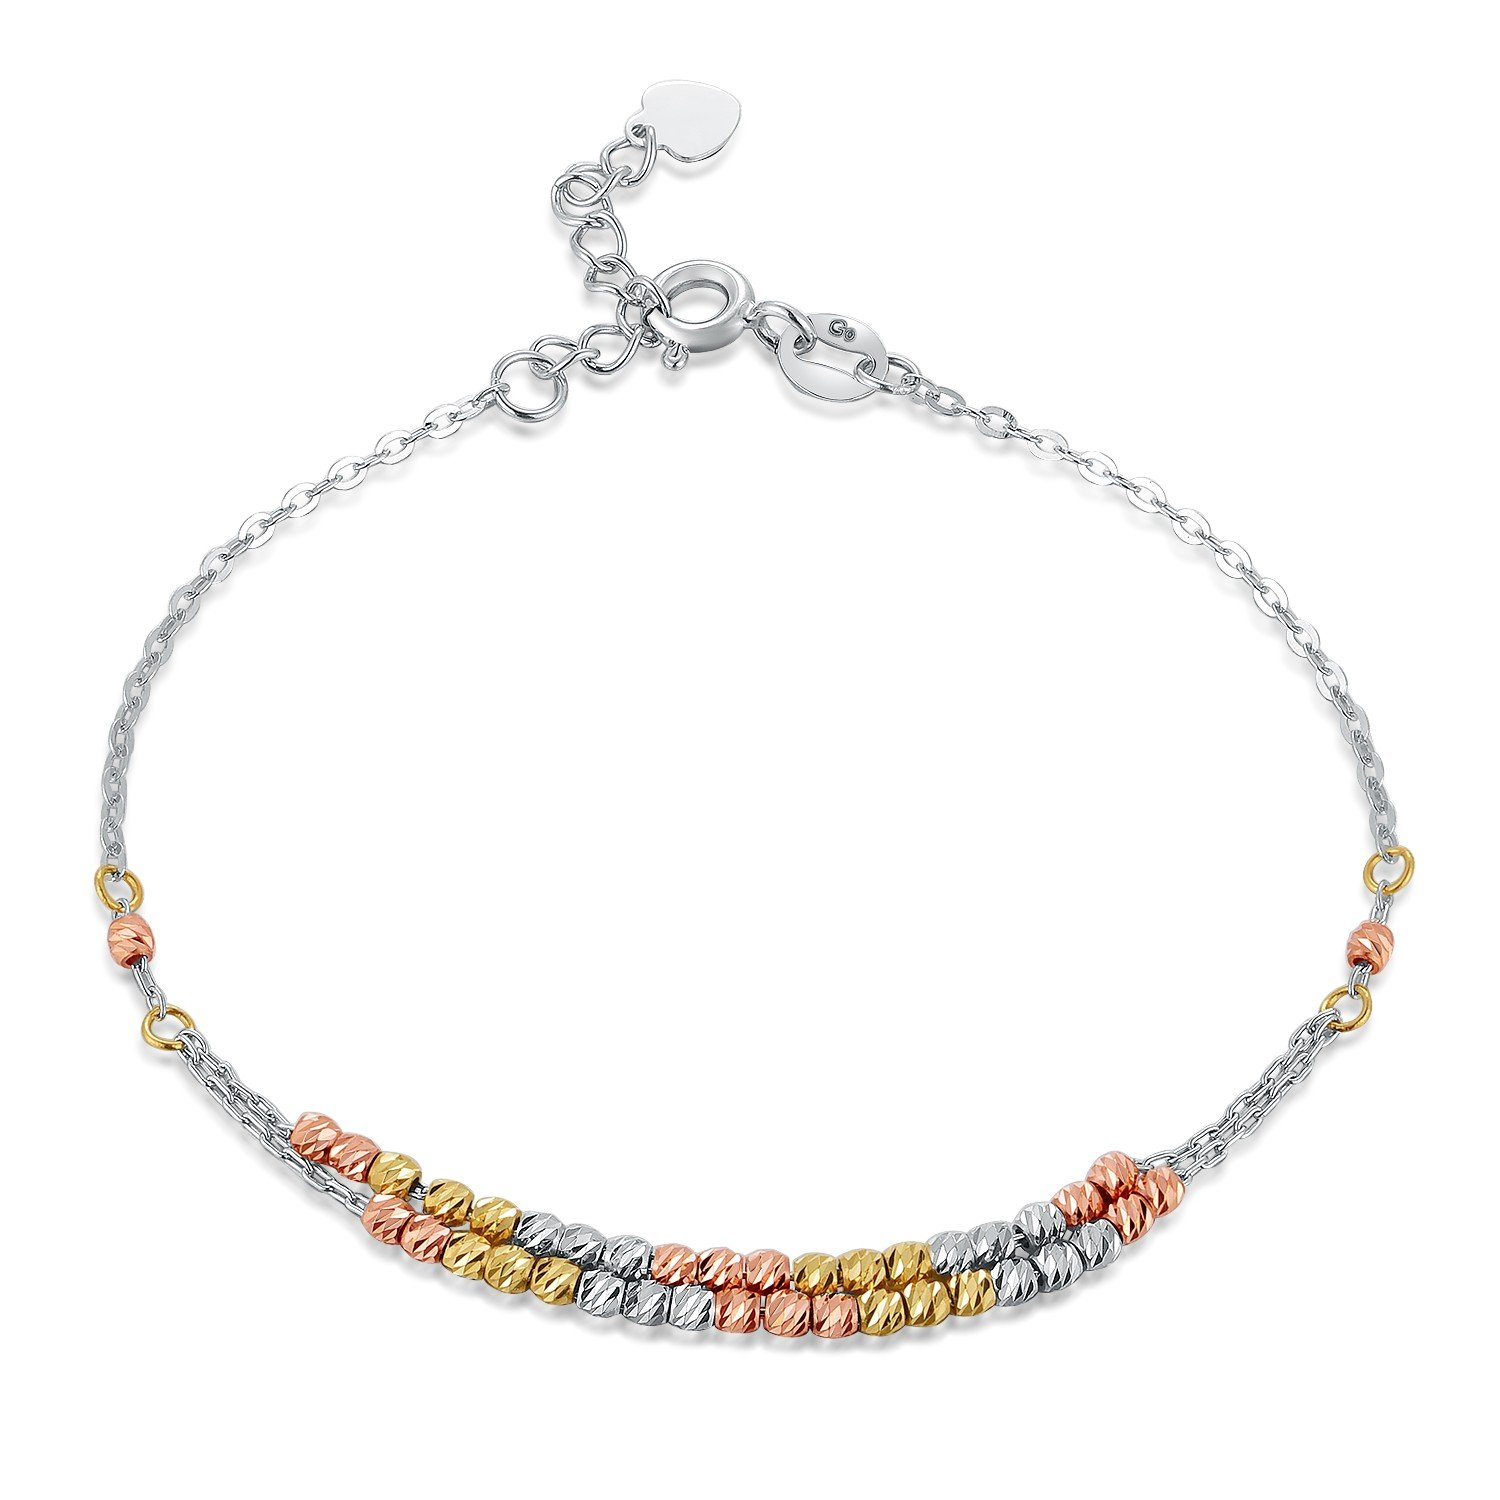 MaBelle 14K Tri-Color Gold Yellow, Rose & White Beads Double Anchor Chain Bracelet (6.5'')